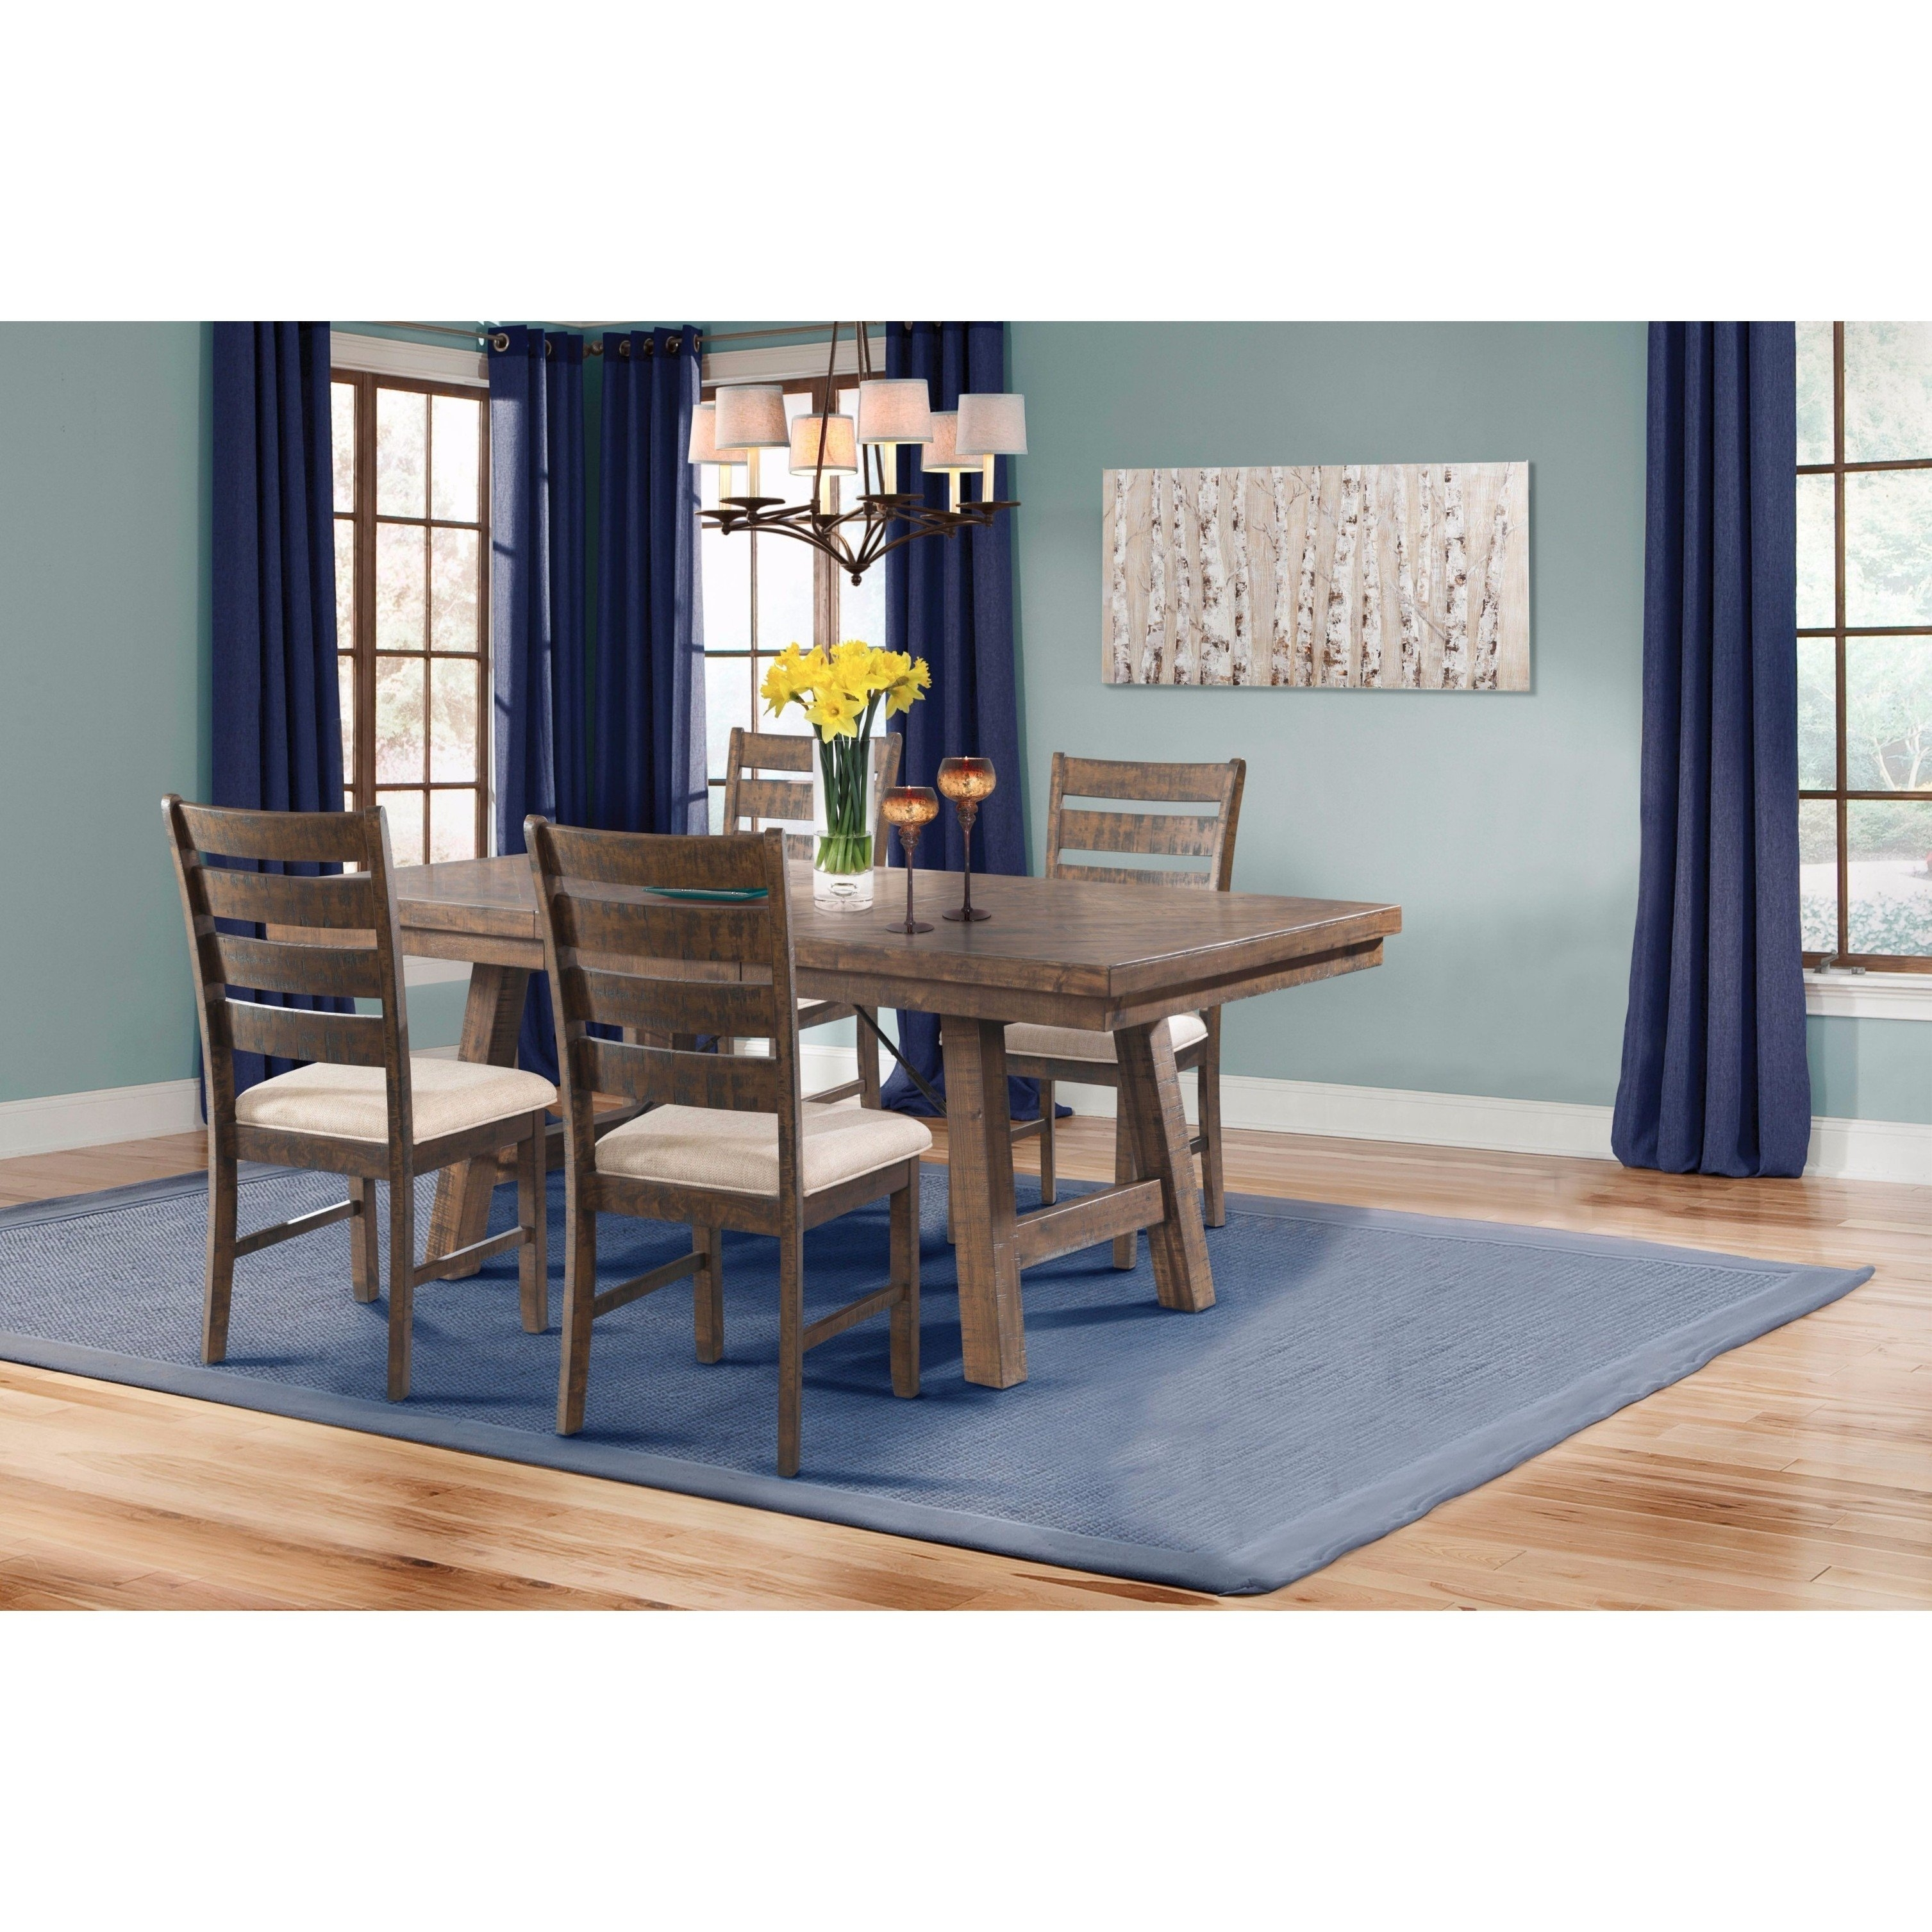 Shop Picket House Furnishings Dex 5Pc Dining Set Table, 4 Ladder For 2018 Caden 6 Piece Dining Sets With Upholstered Side Chair (View 10 of 20)